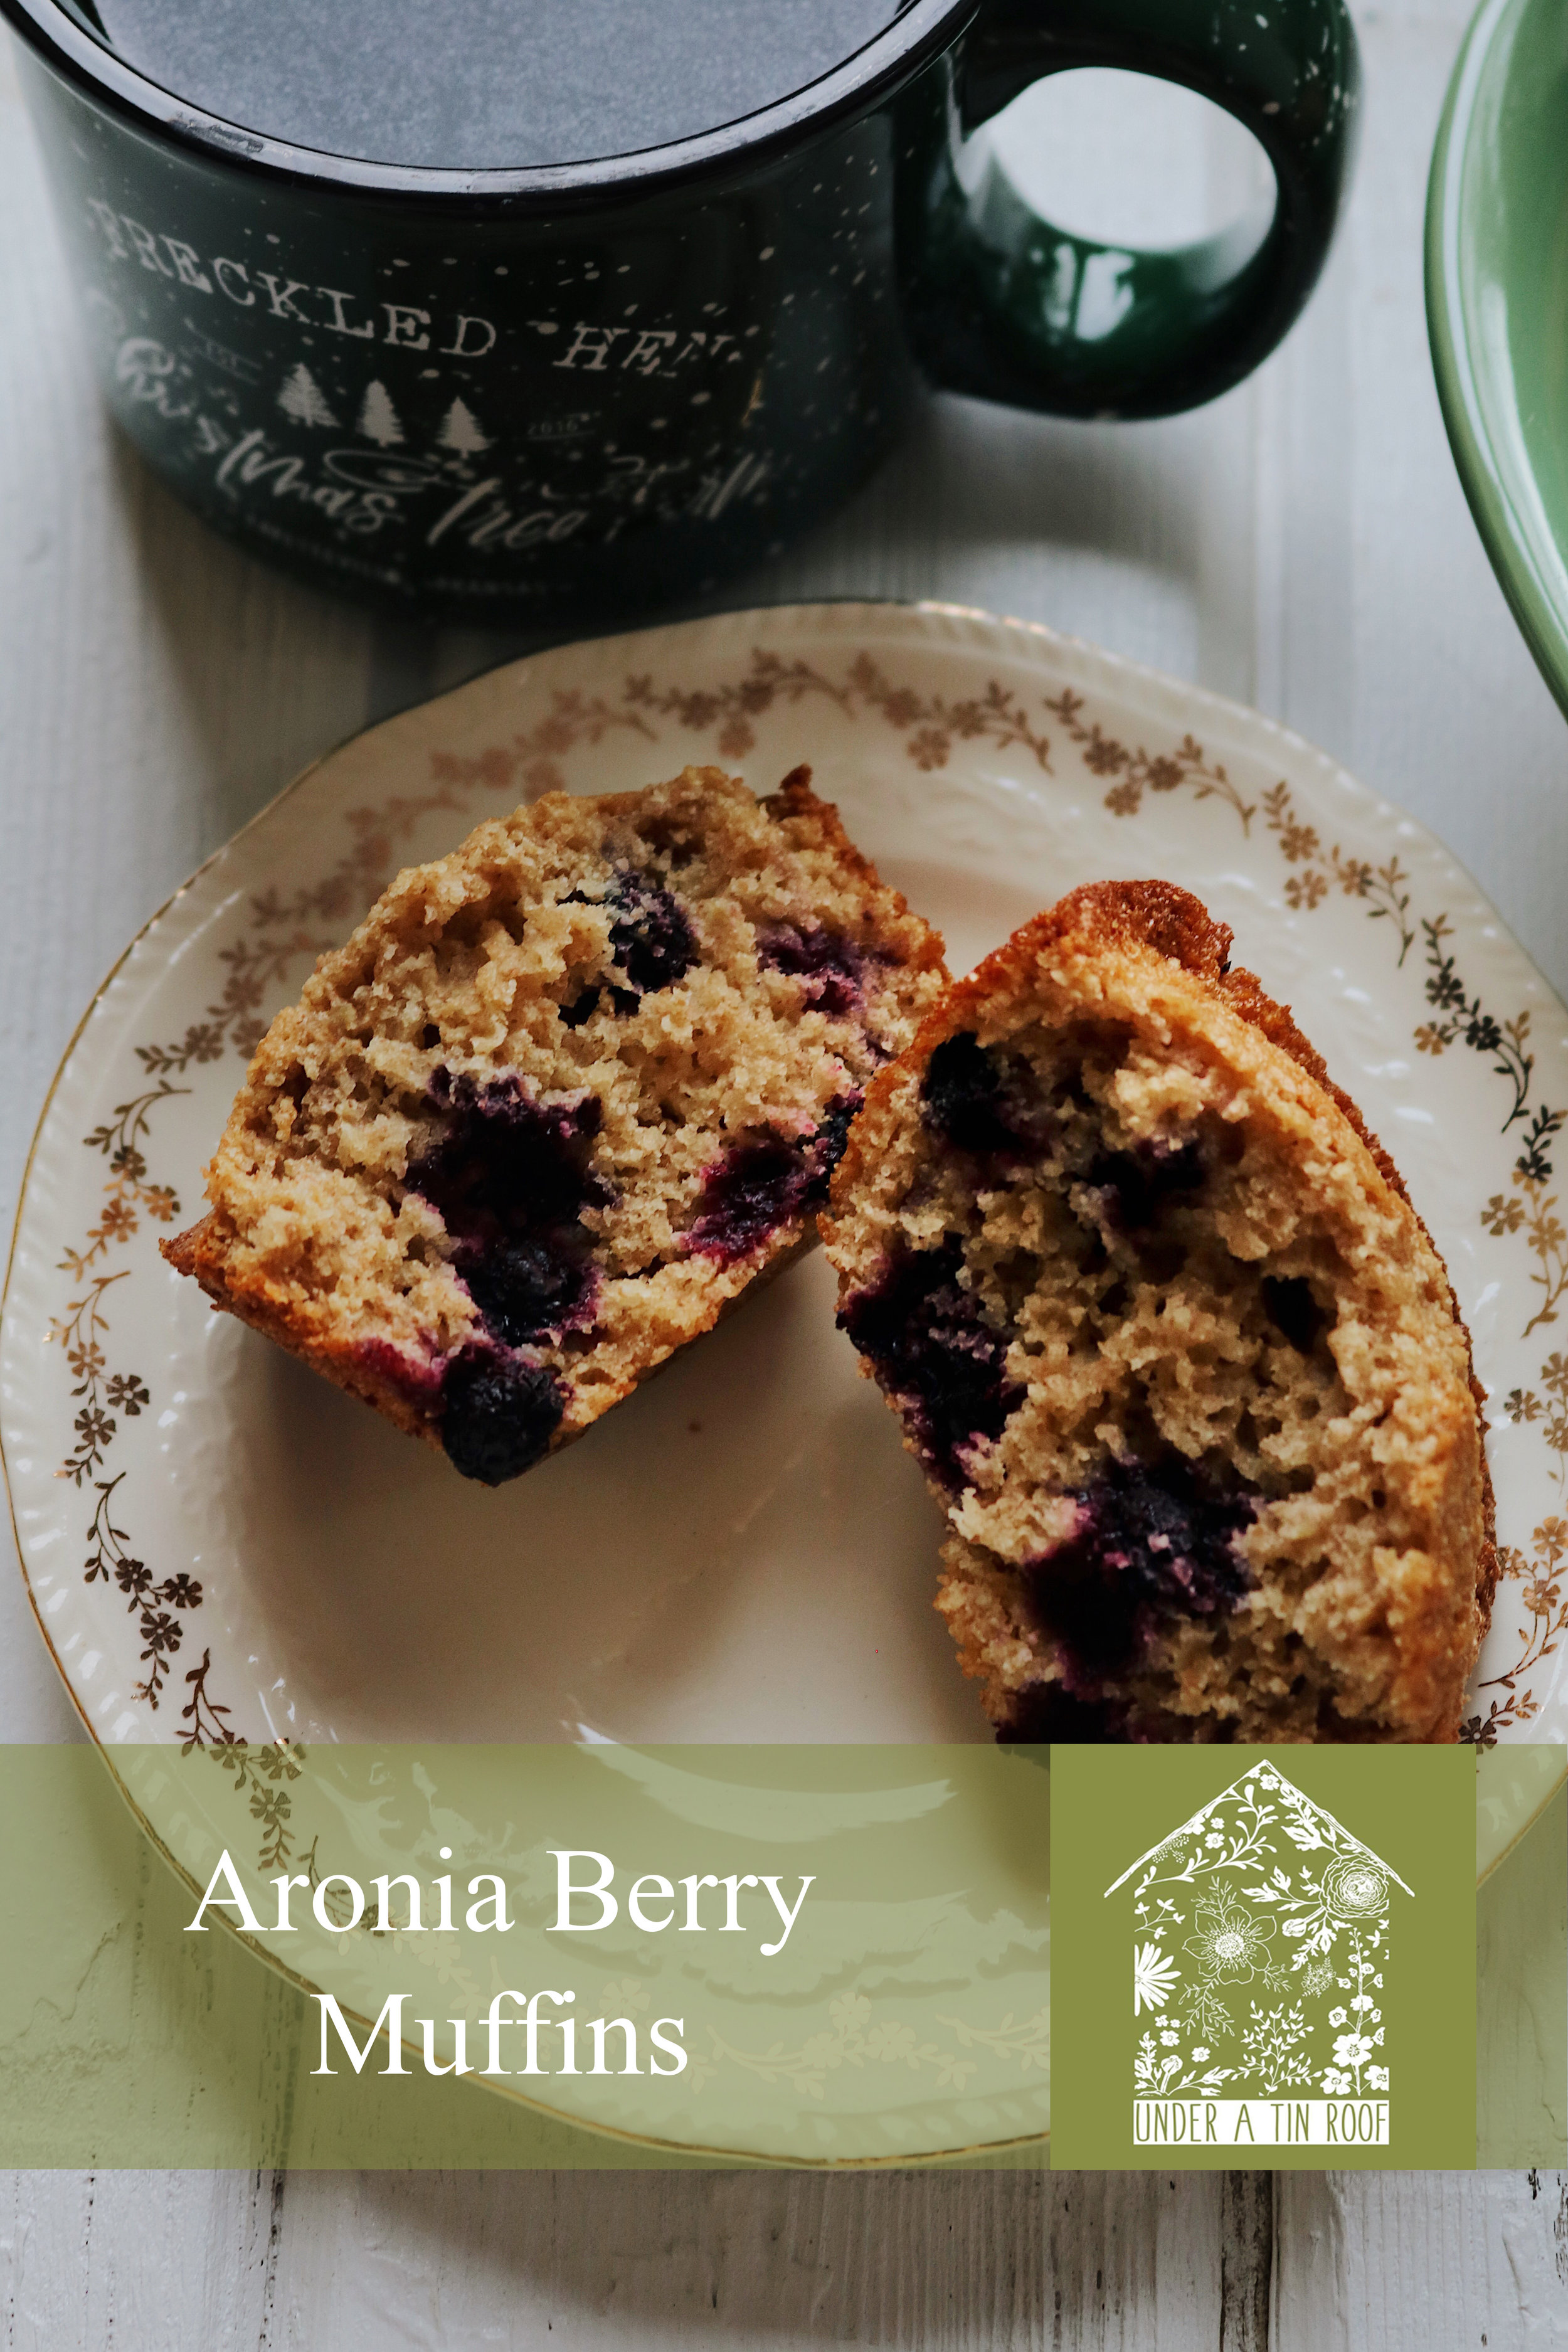 Aronia Berry Muffins - Under A Tin Roof